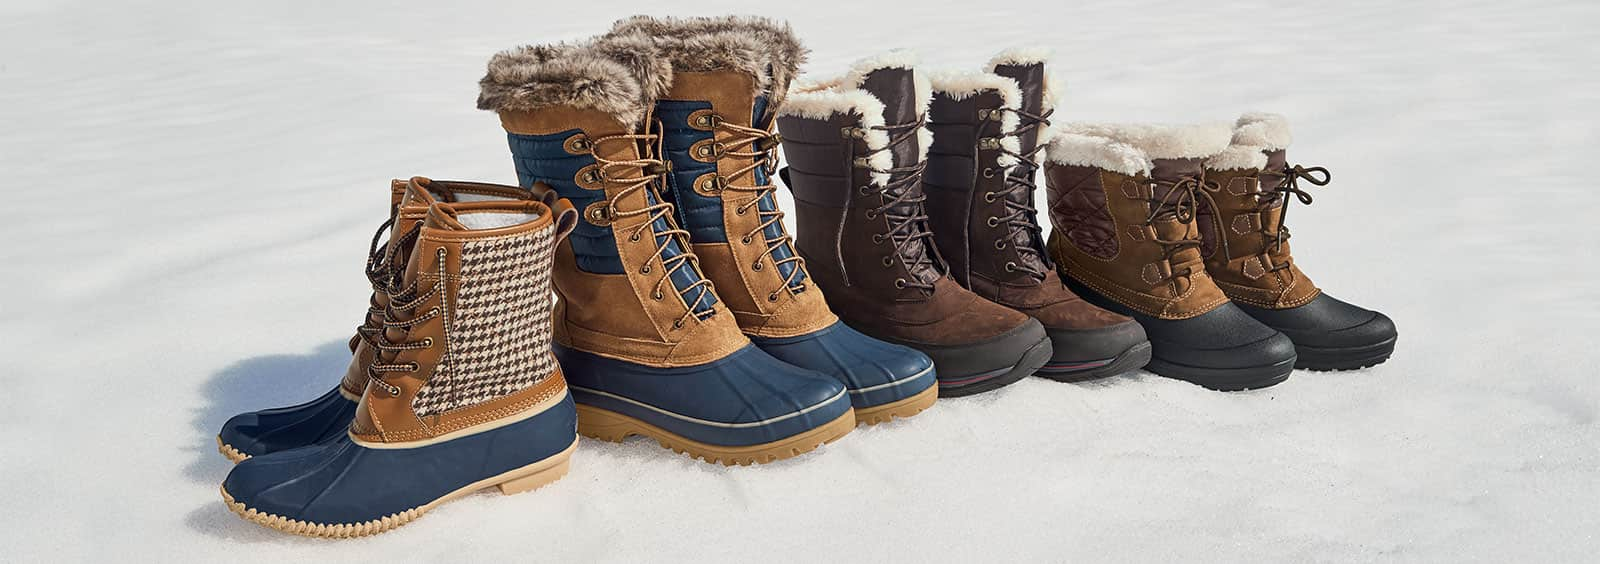 Women's Winter Boots for Slippery Conditions